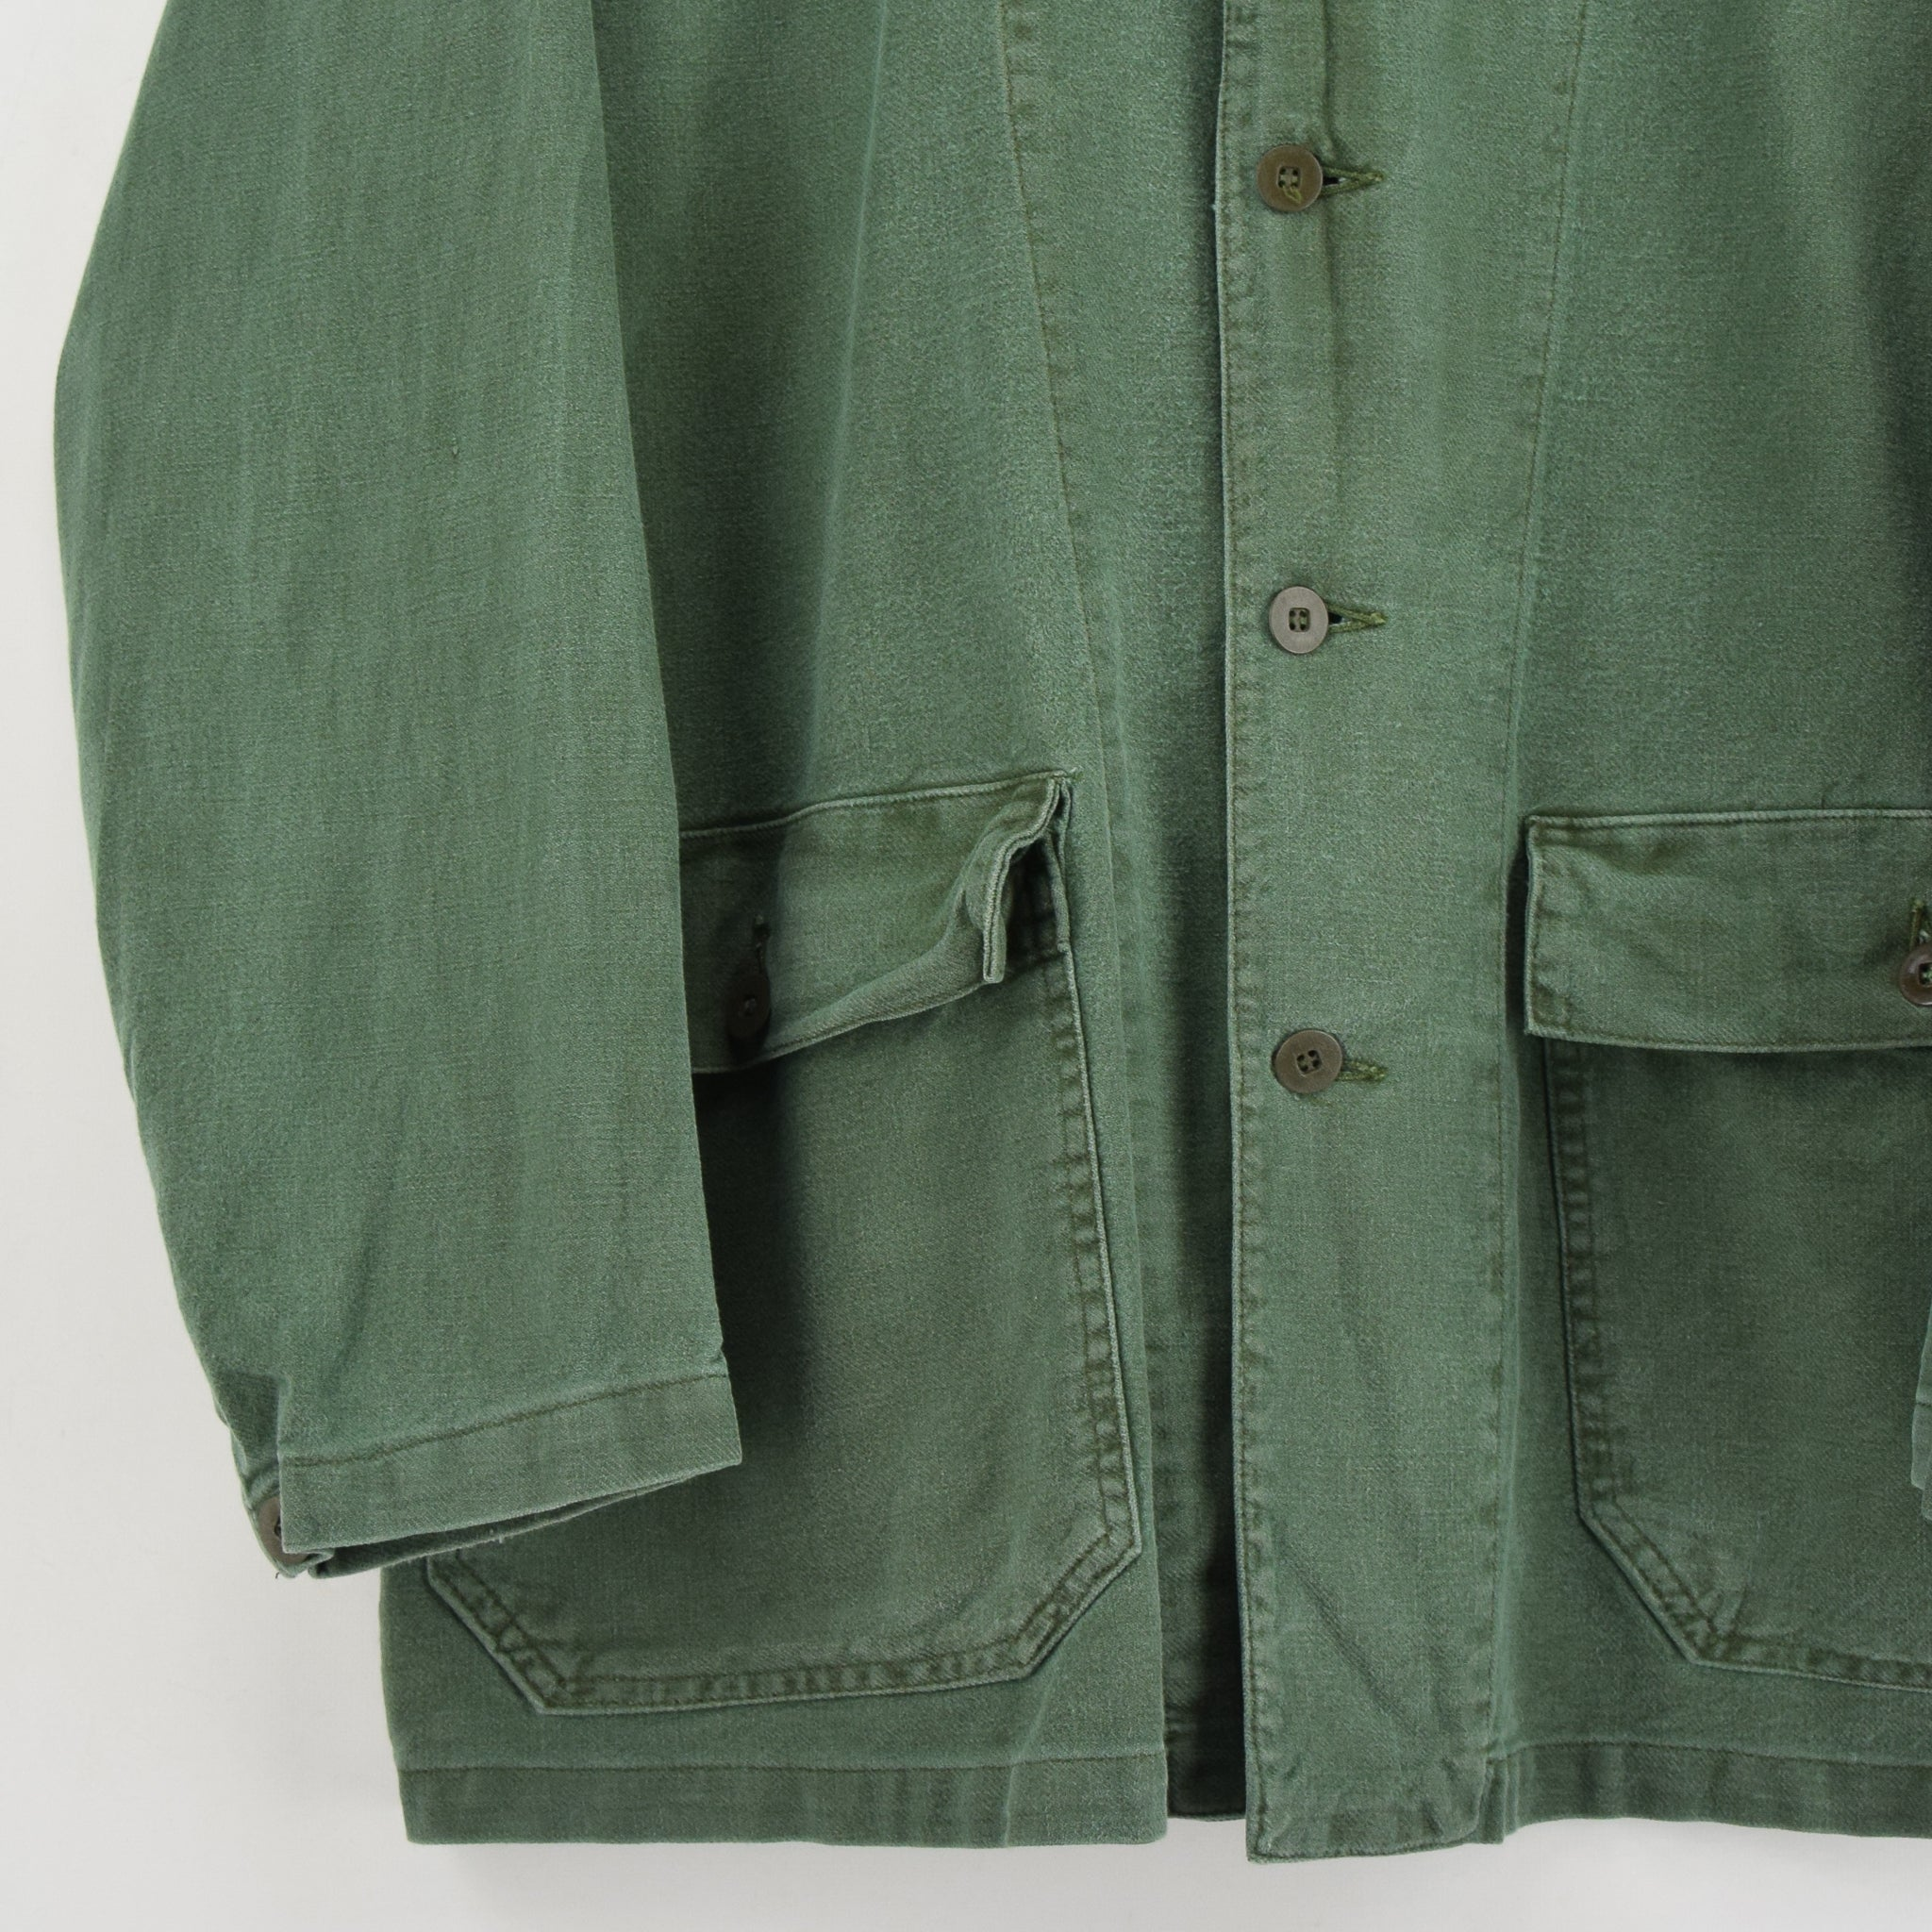 Vintage Swedish Worker Style Green Distressed Military Cotton Field Jacket M / L front hem